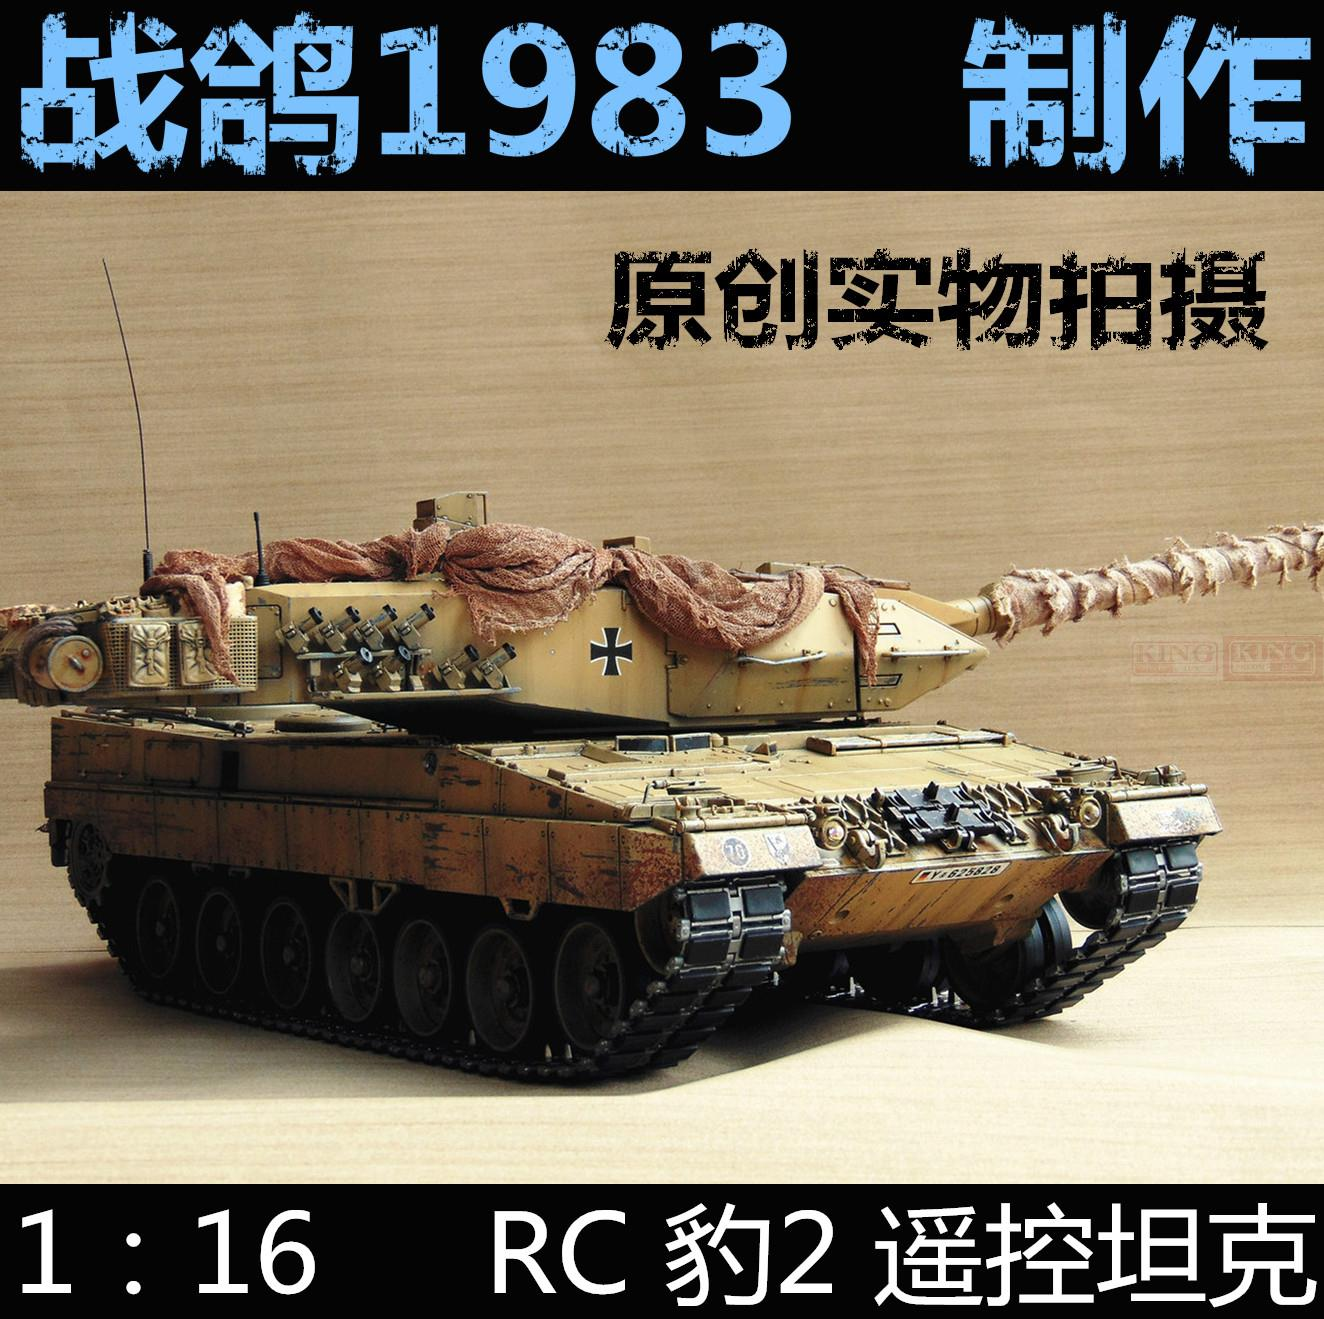 KNL HOBBY Heng Long, 1: 16RC Leopard 2 tank model remote control two foundry heavy coating of paint to do the old heng long